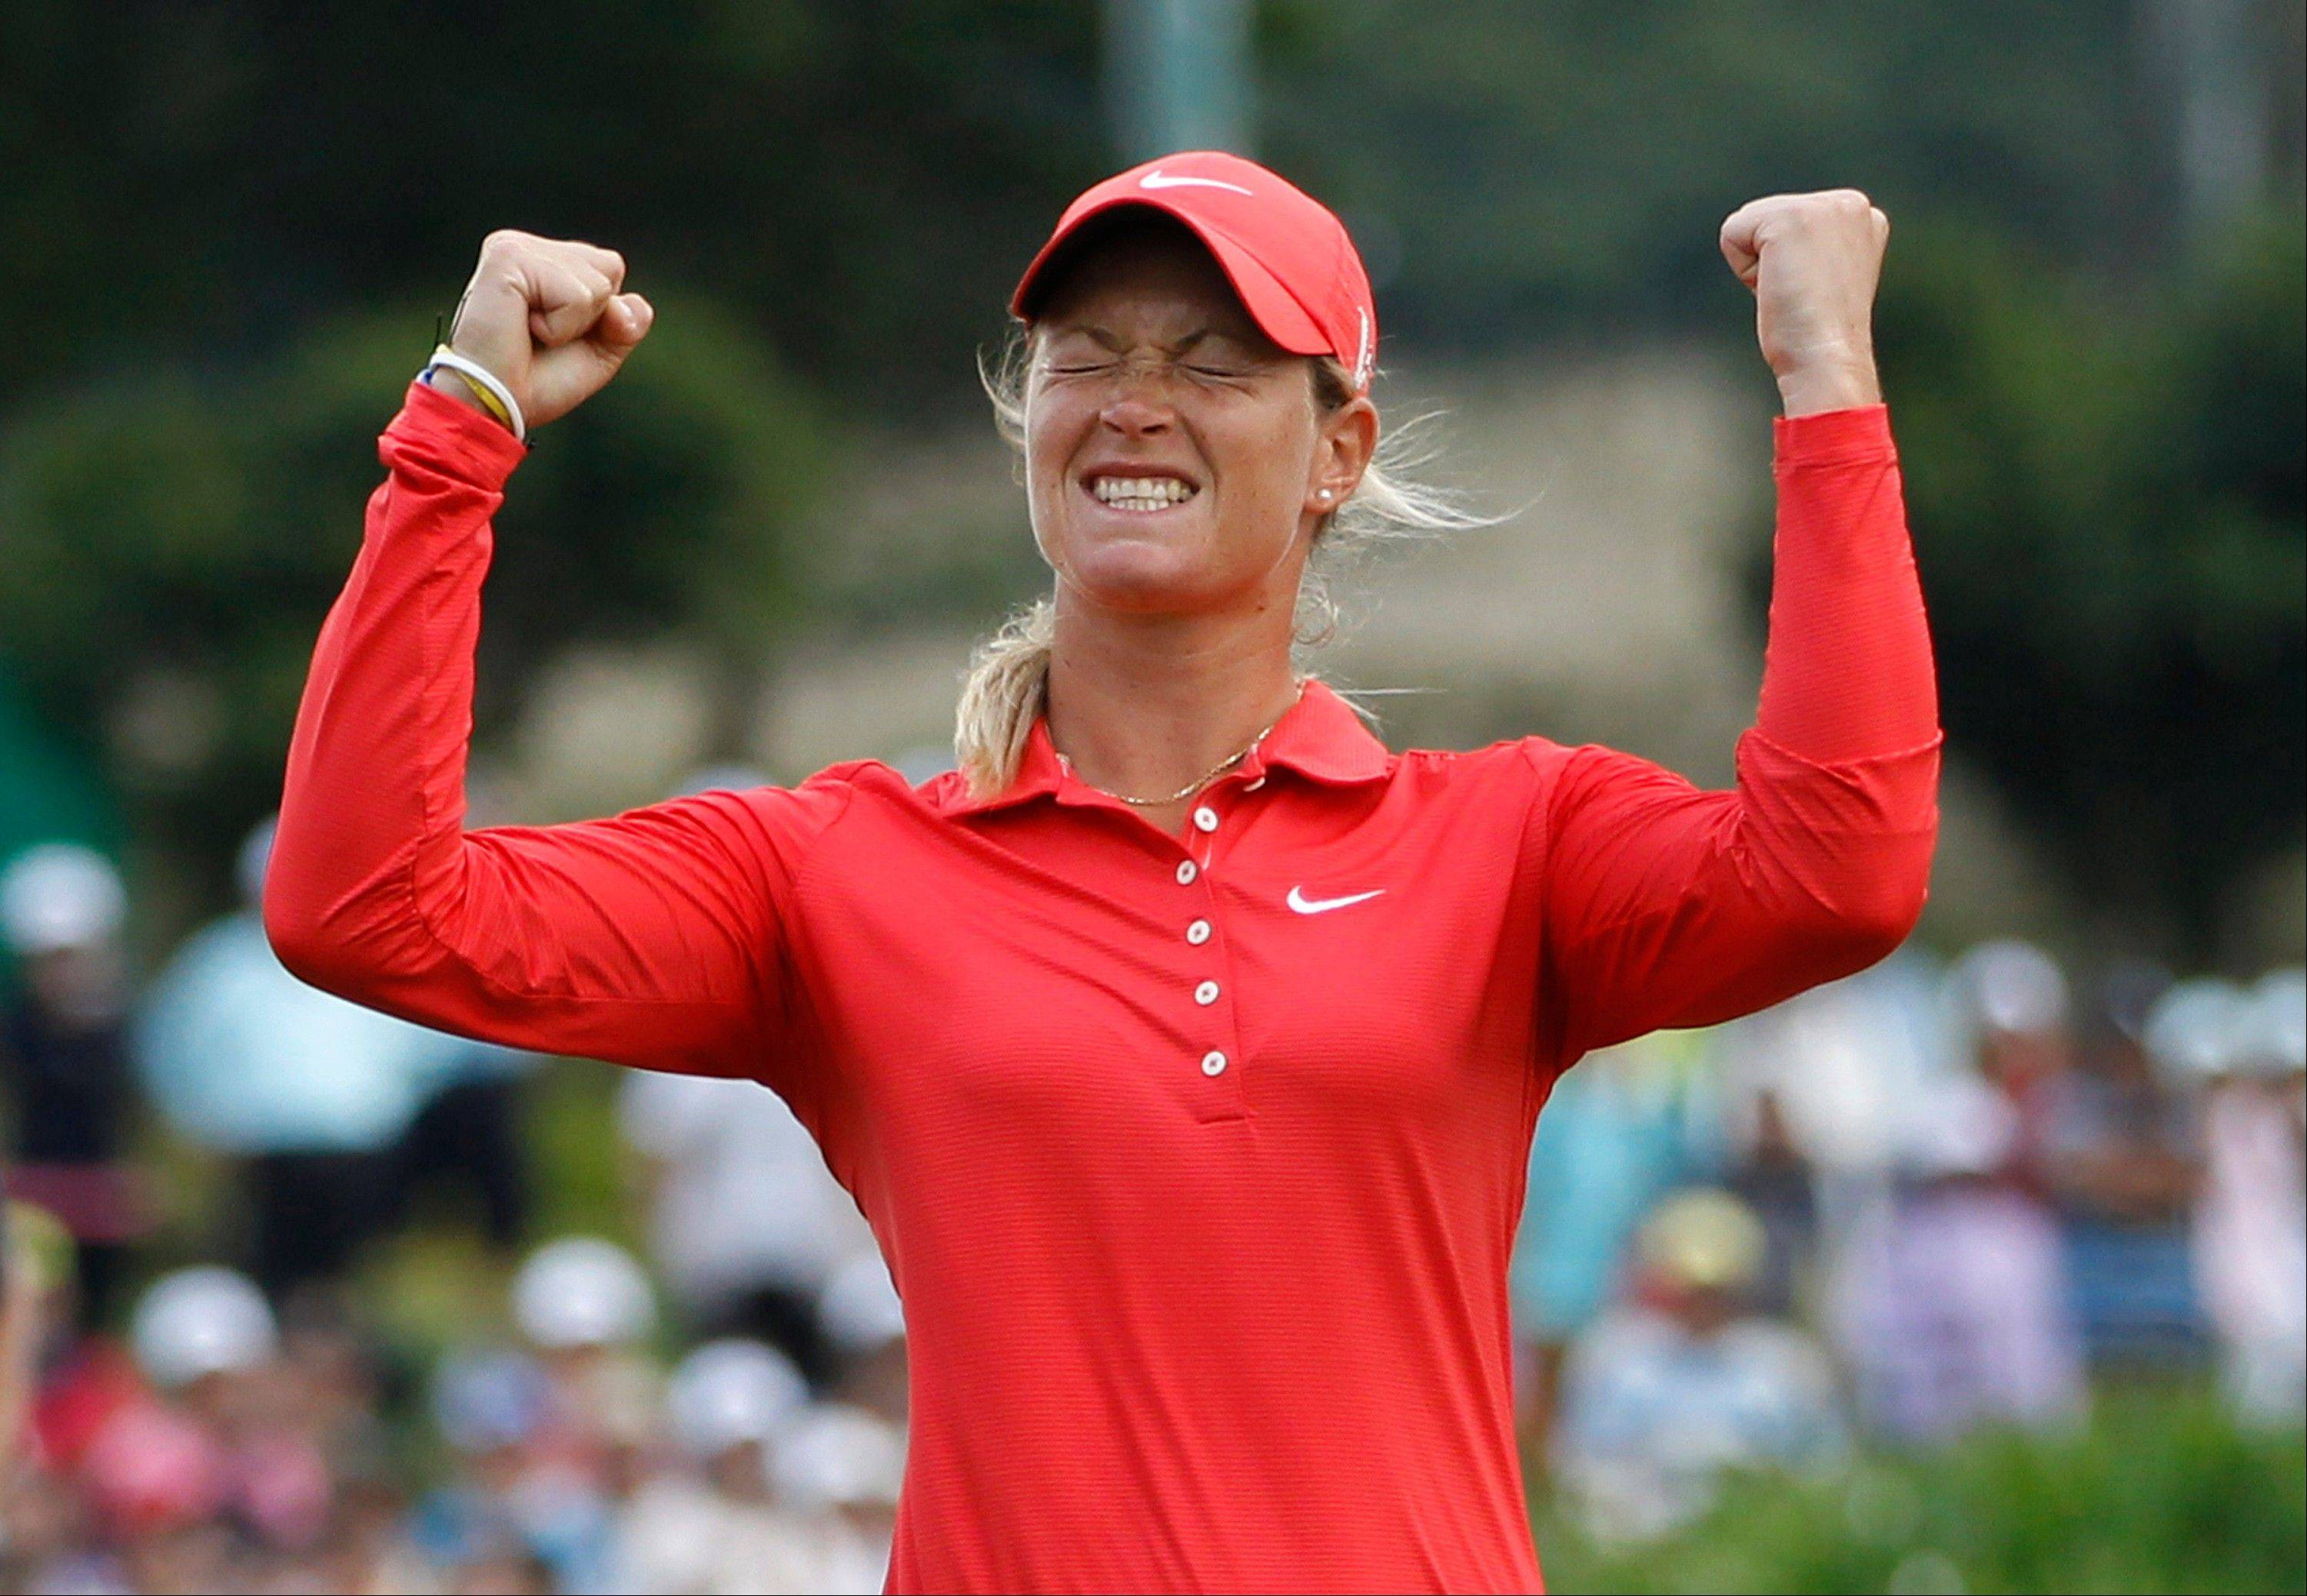 Suzann Pettersen from Norway, reacts on the 18th green after winning the Taiwan Championship at the Sunrise Golf & Country Club, Sunday in Yang Mei, Taiwan. Pettersen closed with a 3-under 69 at Sunrise to finish at 19 under and earned $300,000 for her 10th LPGA Tour title.